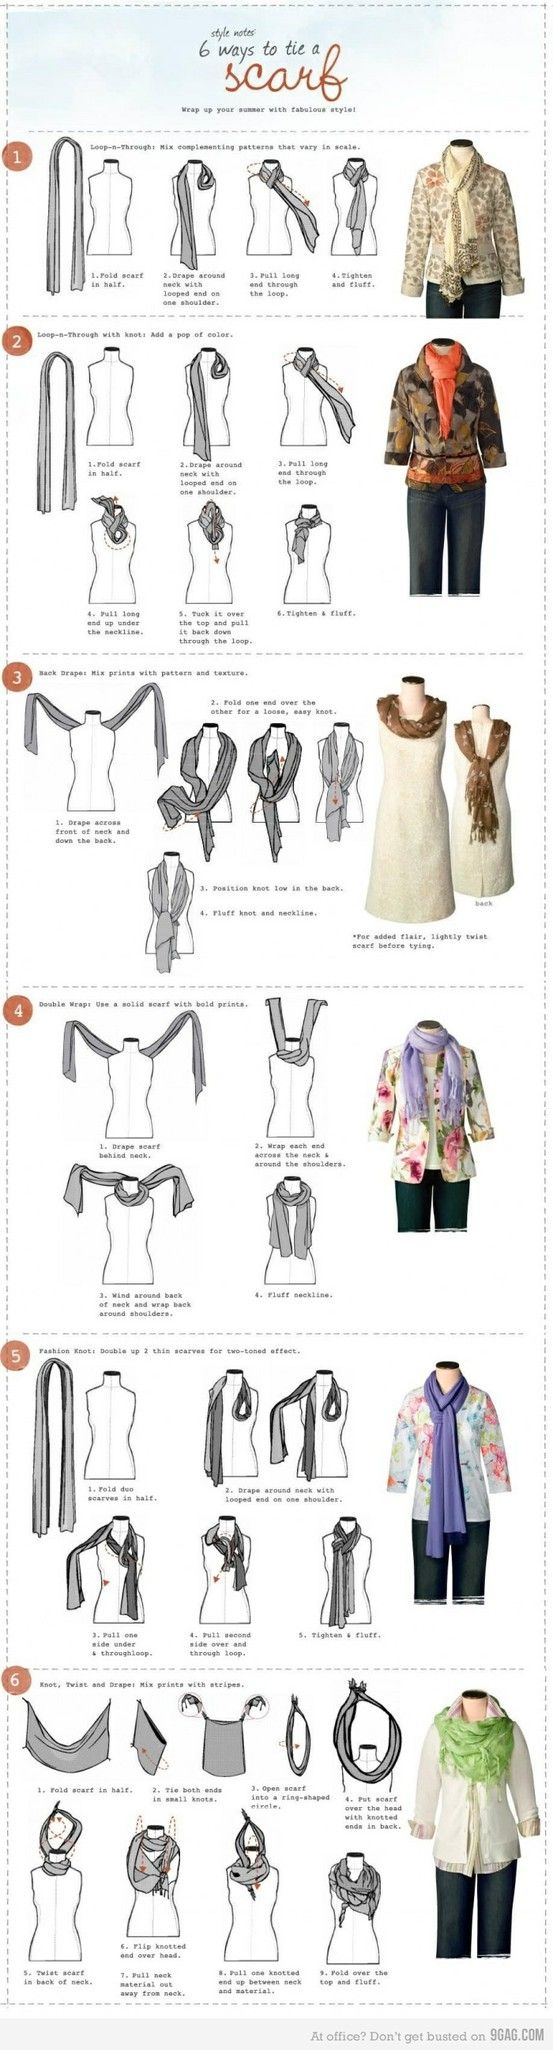 How to wear scarves - Can someone please print this for me,